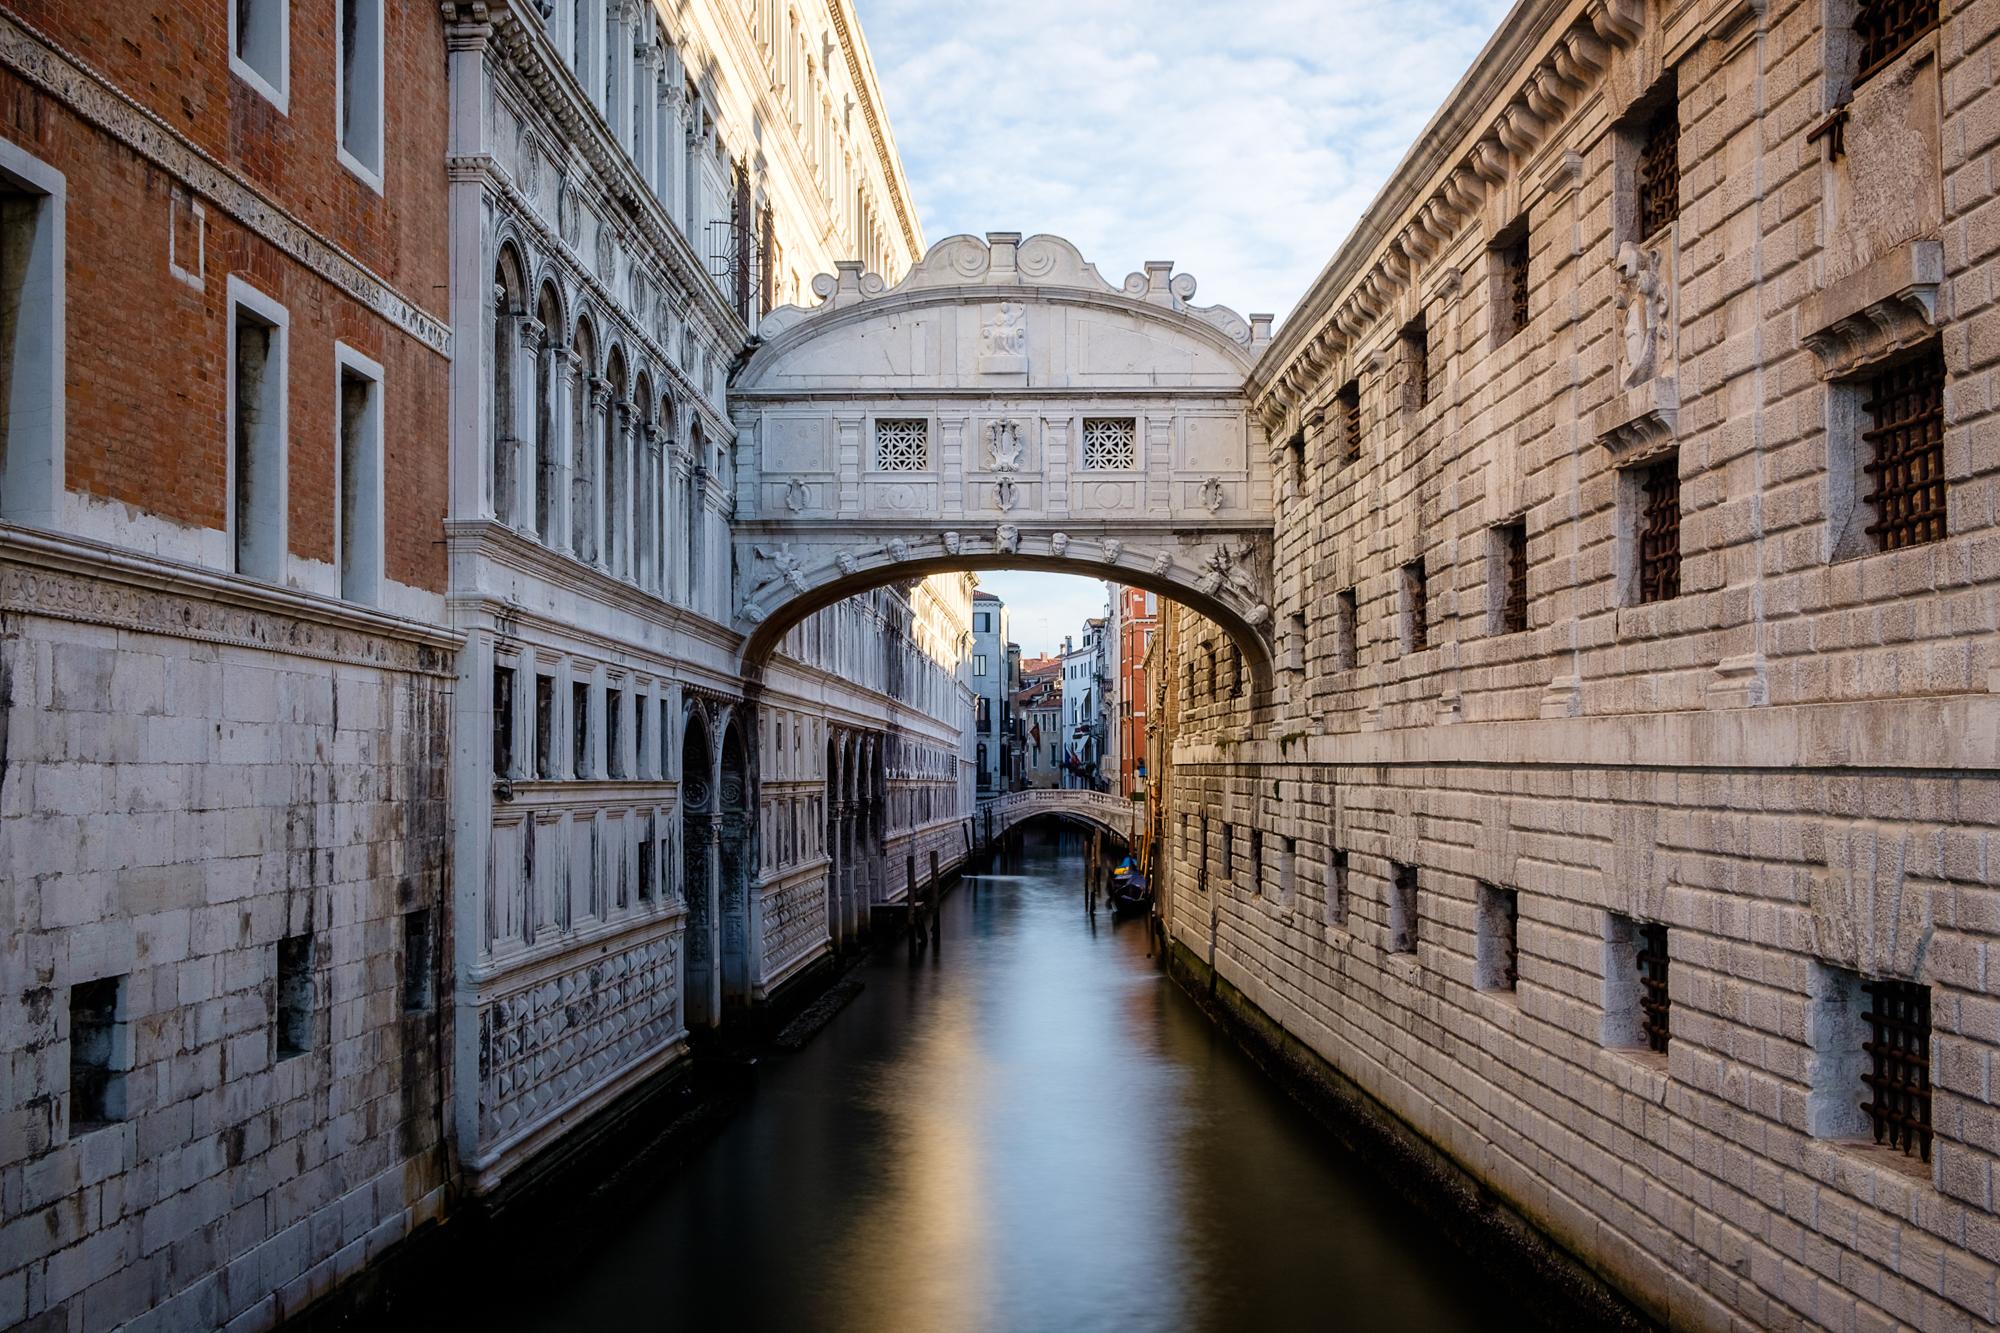 Photo of the Bridge of Sighs at dawn in Venice taken by Trevor Sherwin